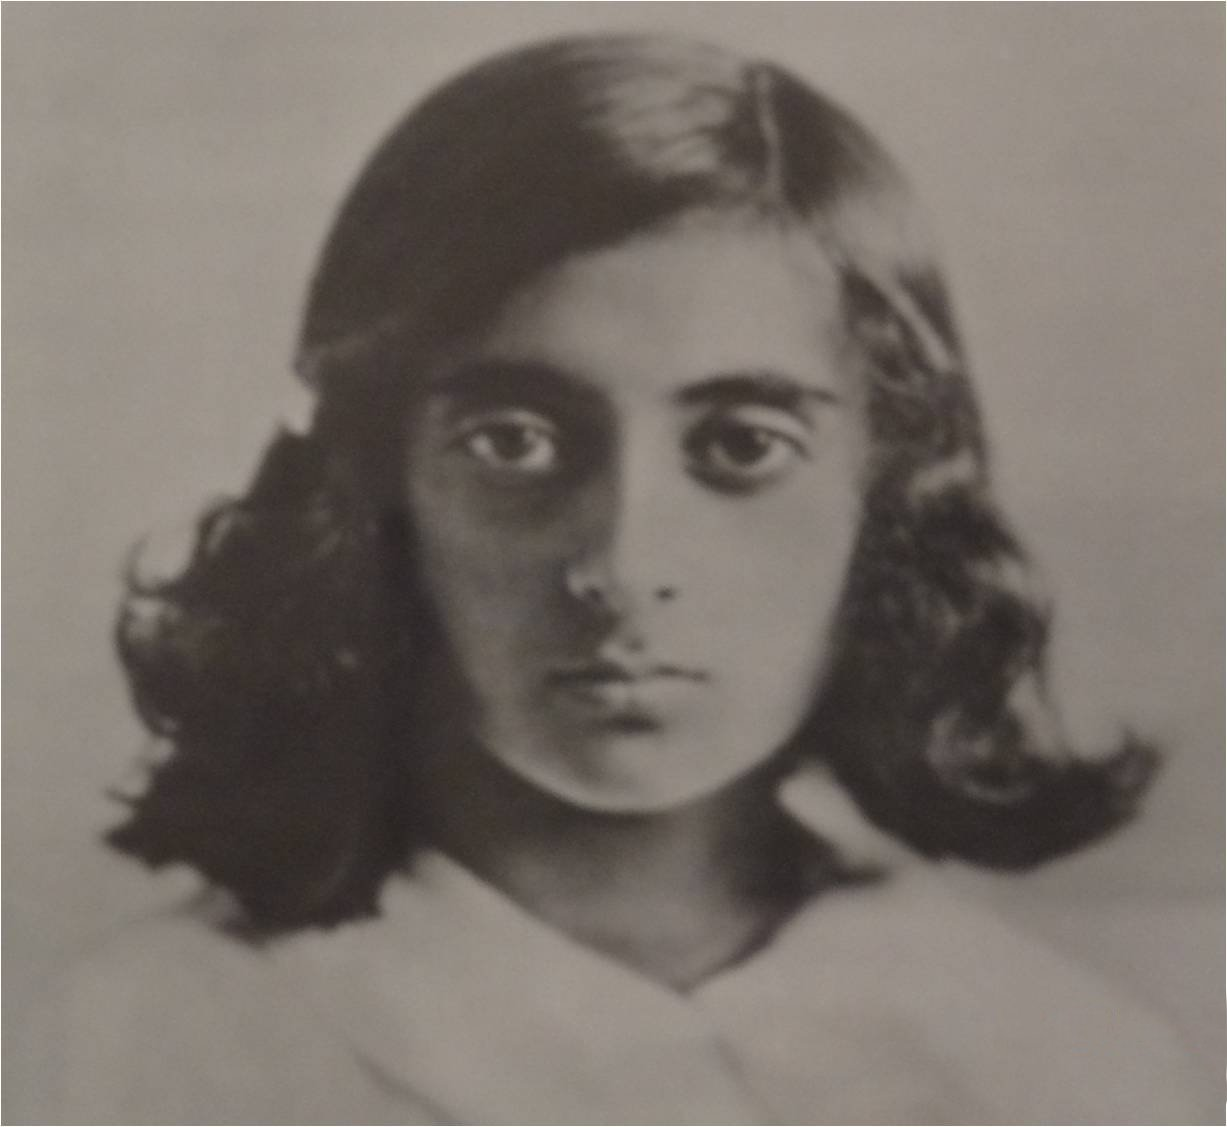 https://i2.wp.com/upload.wikimedia.org/wikipedia/commons/4/4e/IndiraGandhi-Young.jpg